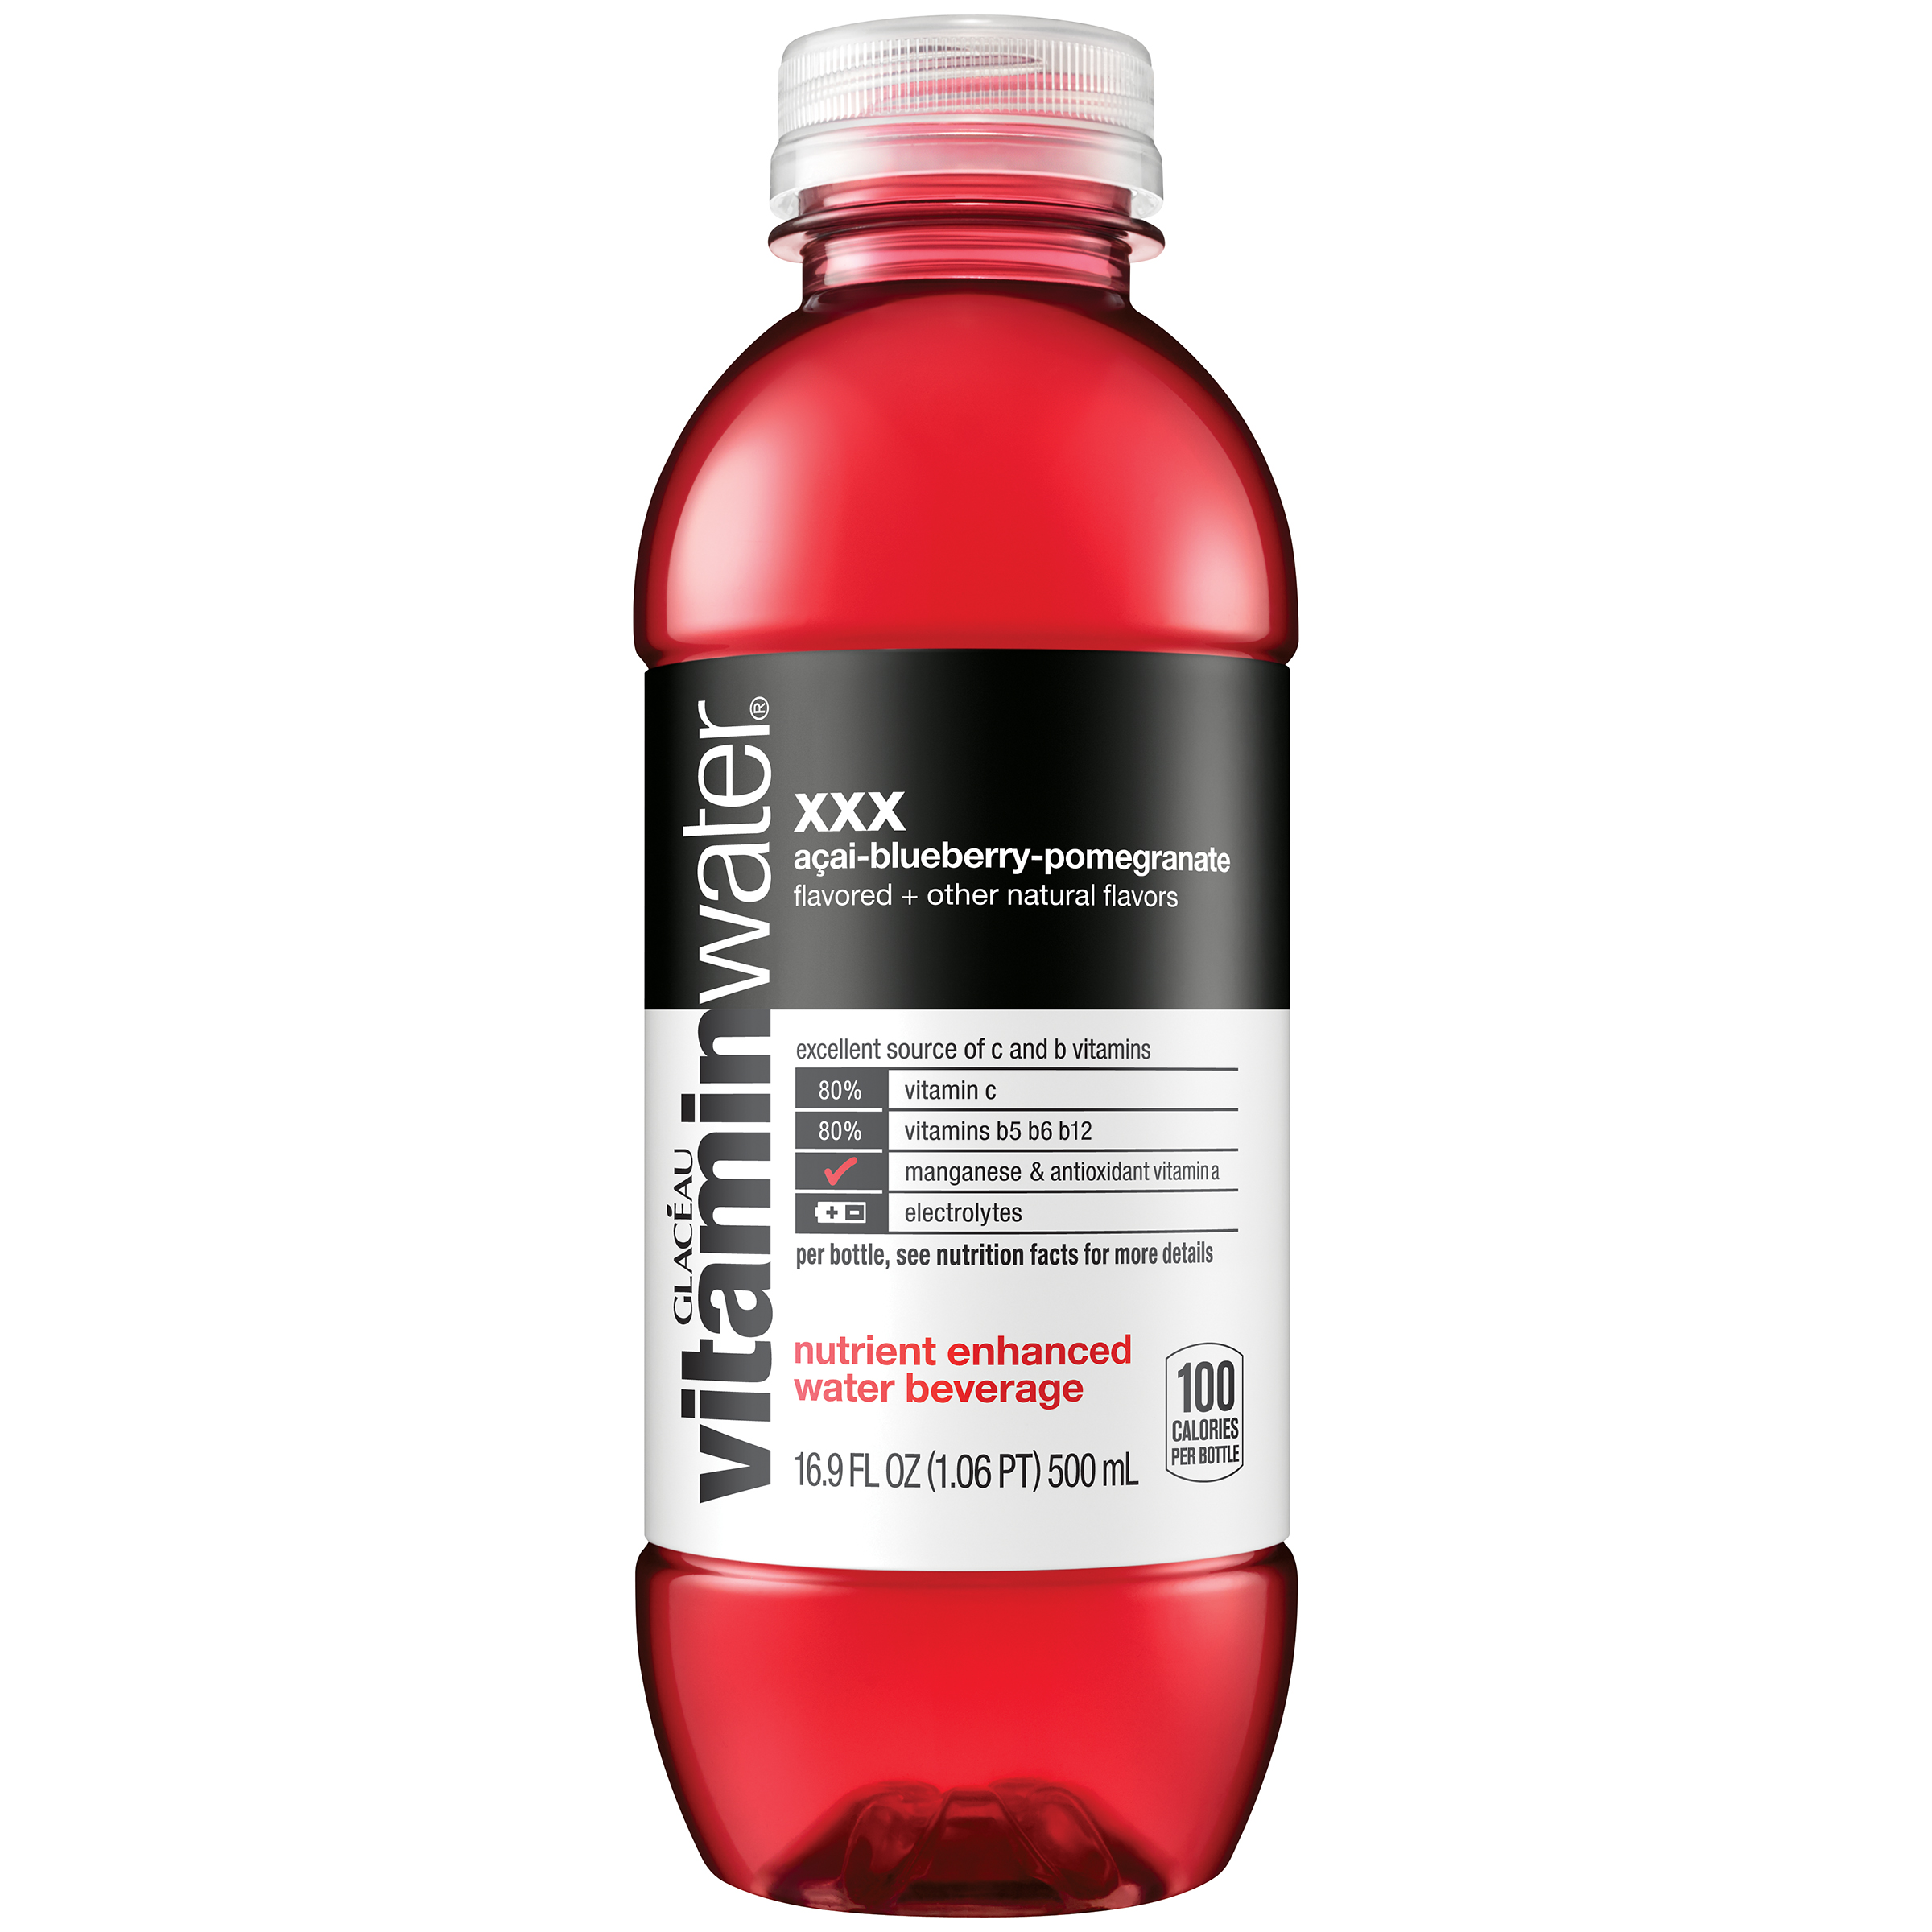 (24 Bottles) Vitaminwater, XXX, 16.9 Fl Oz, 6 Count